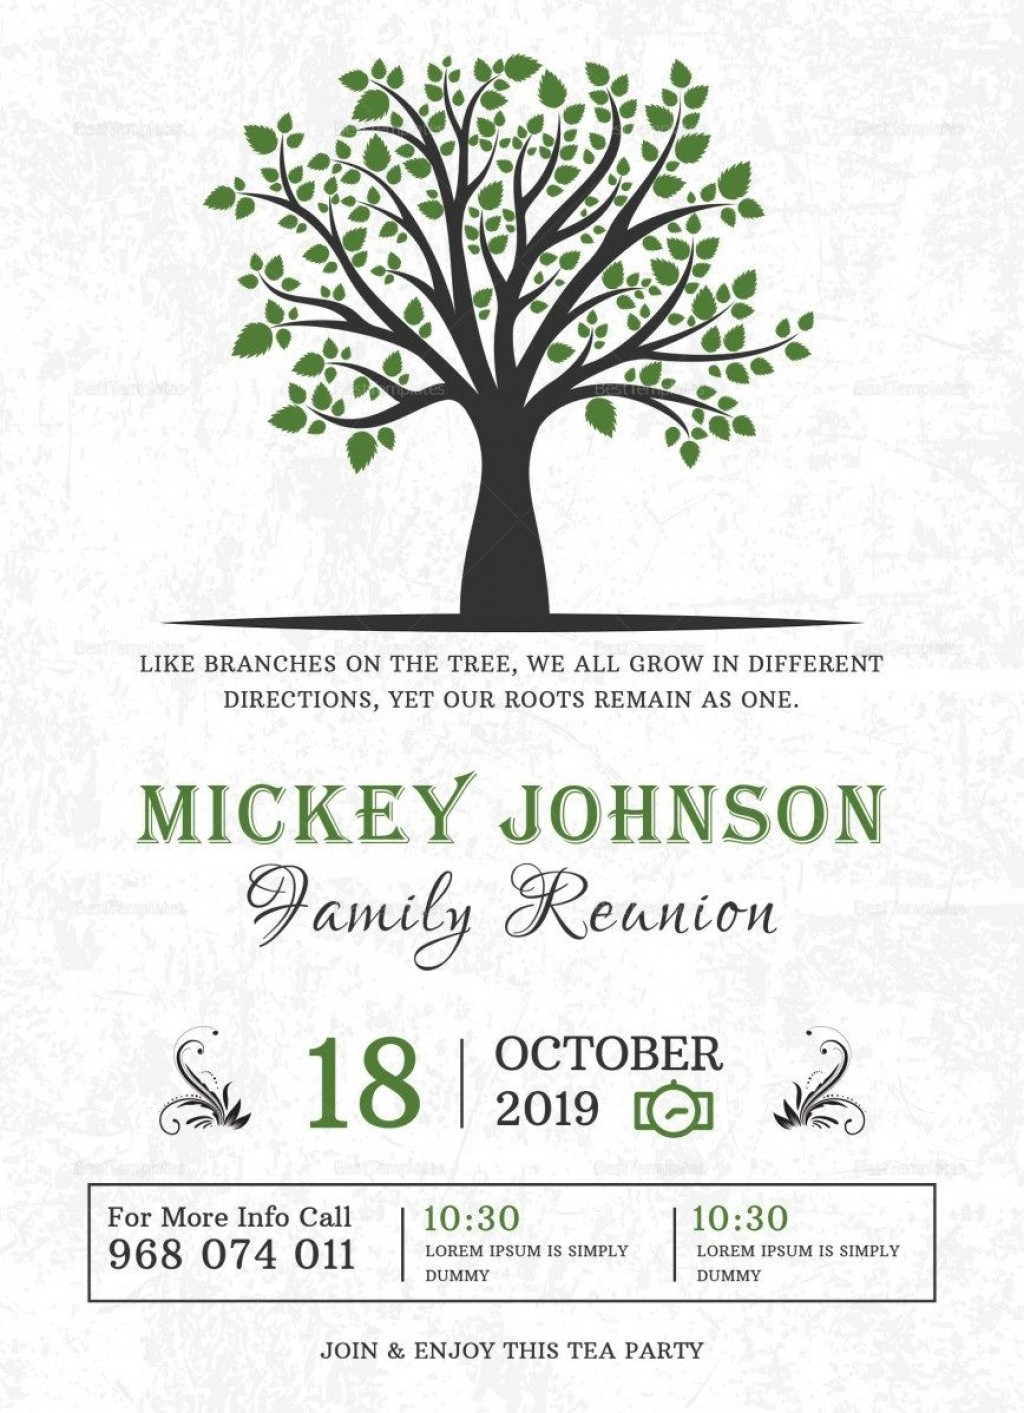 009 Excellent Family Reunion Invitation Card Template High Resolution Large